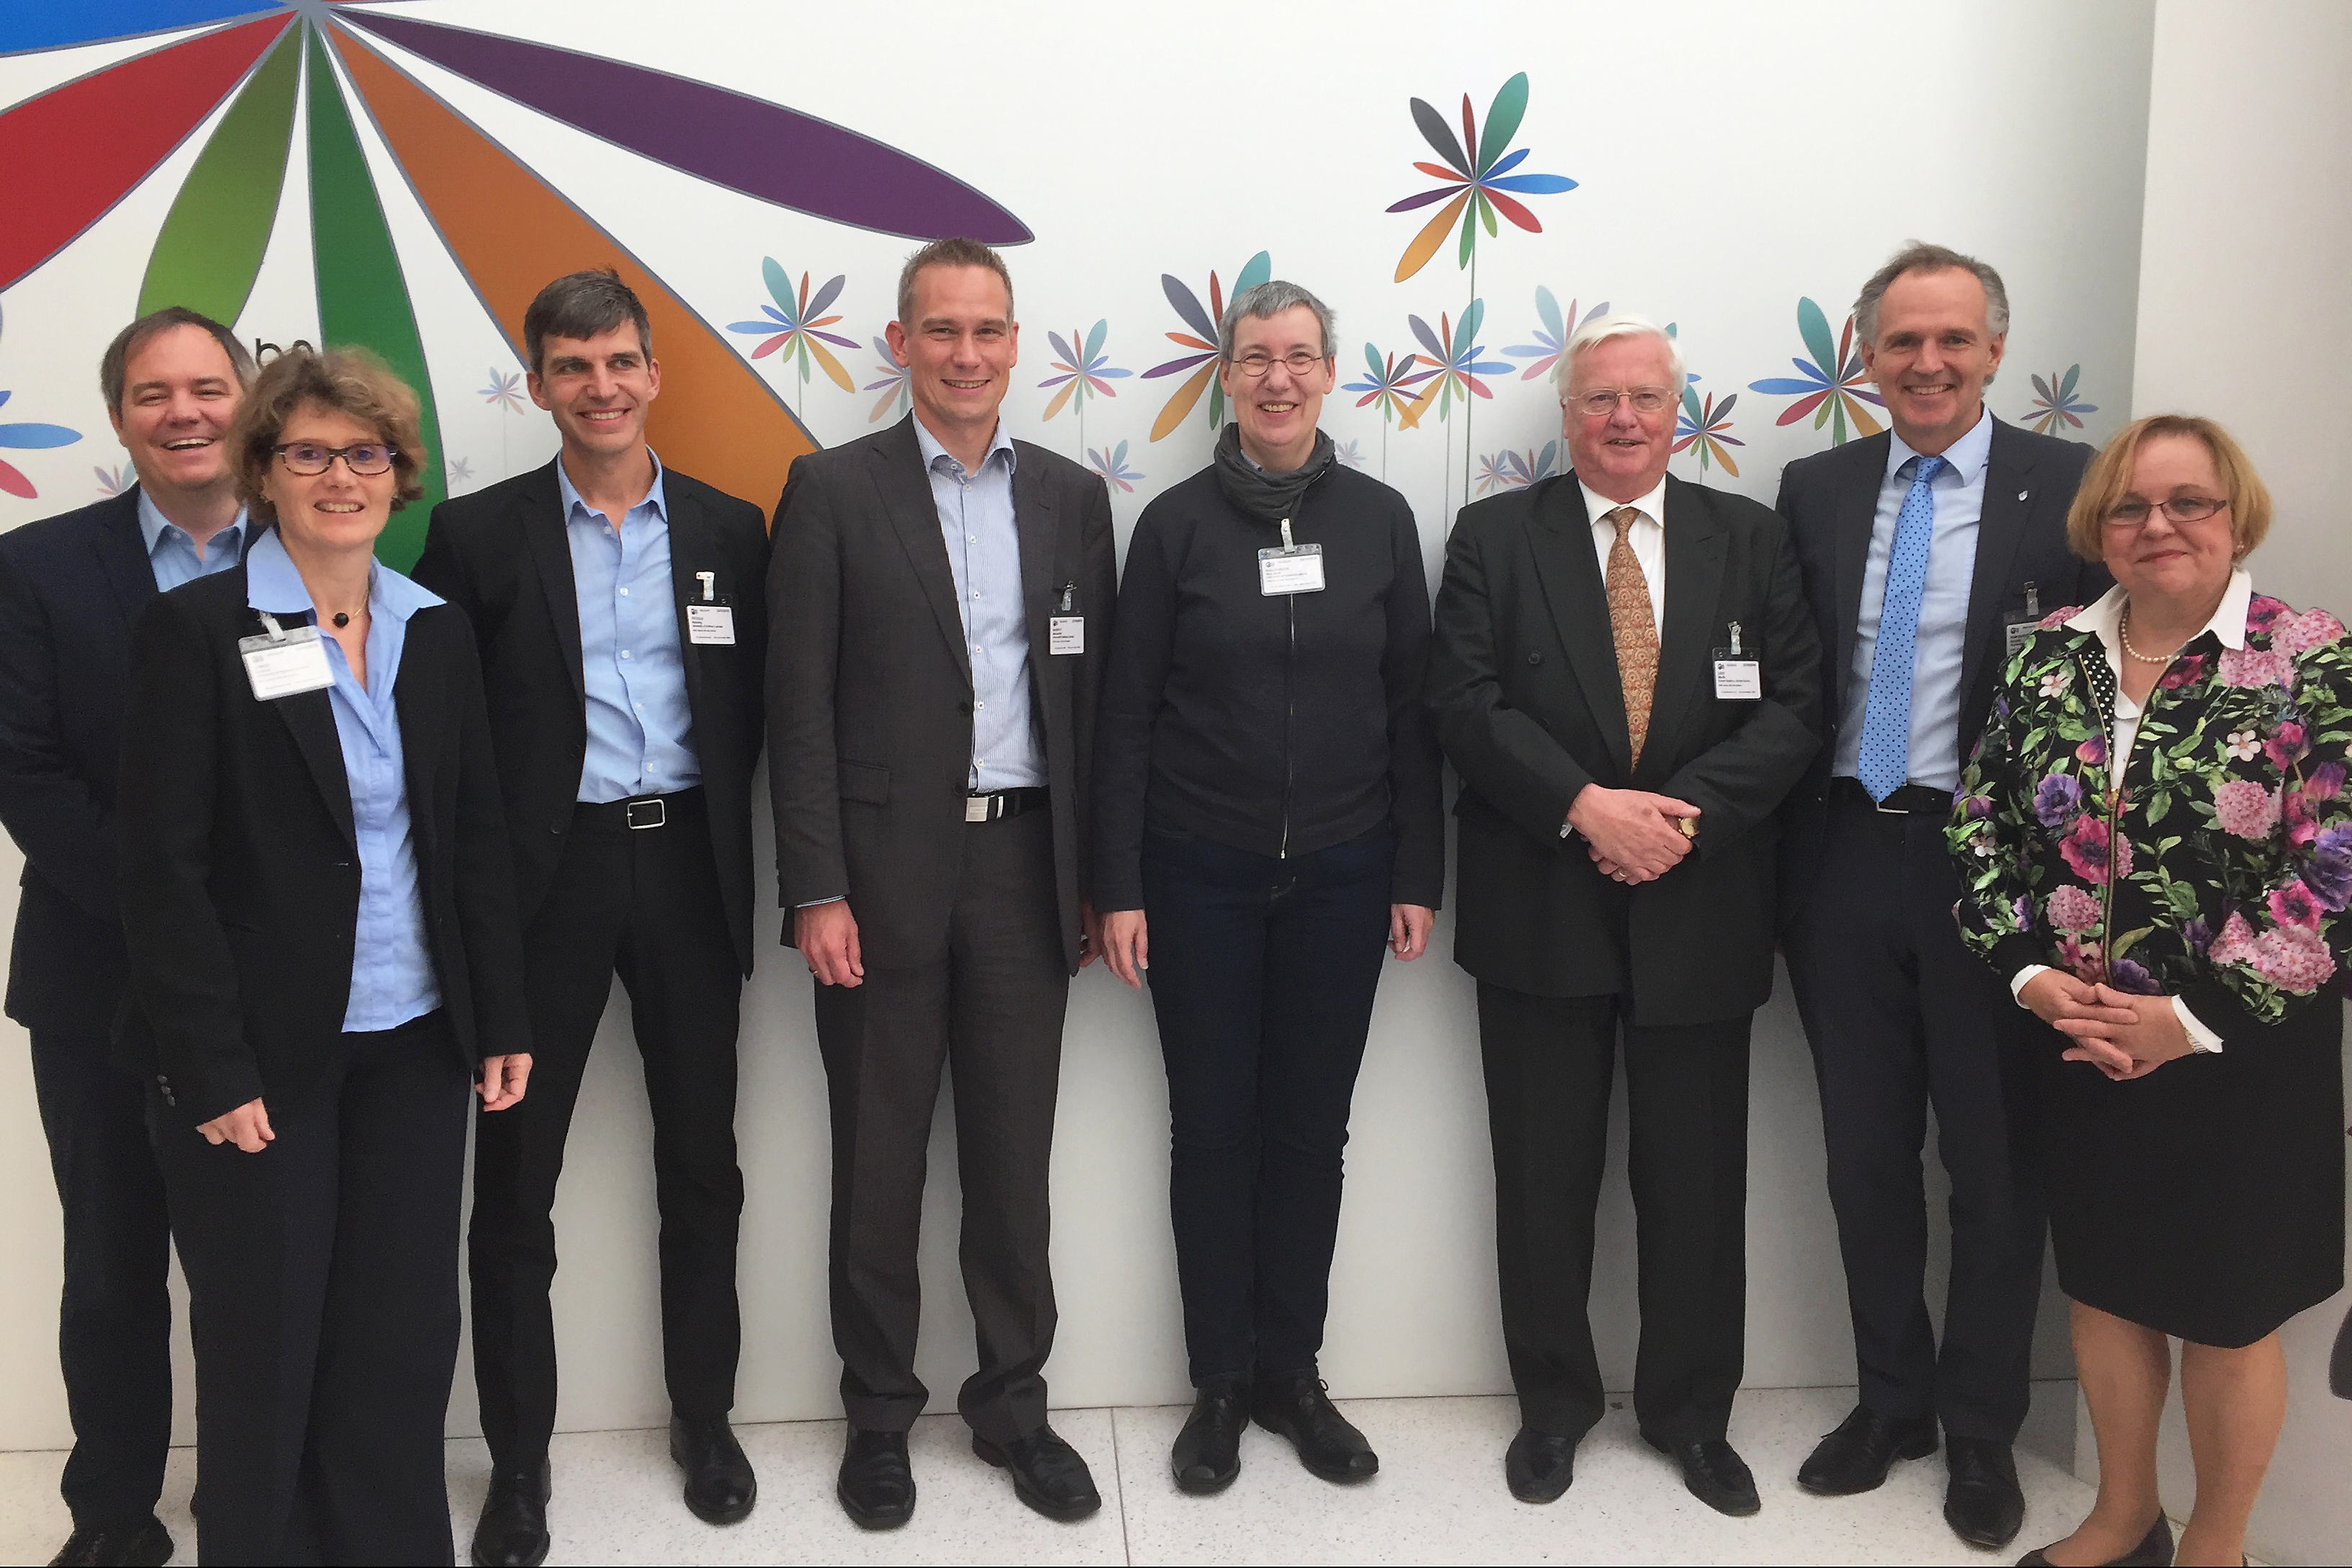 Delegation of the University visited OECD Headquarters in Paris:  Policy Experiments, Systems Thinking and Education were Key Topics